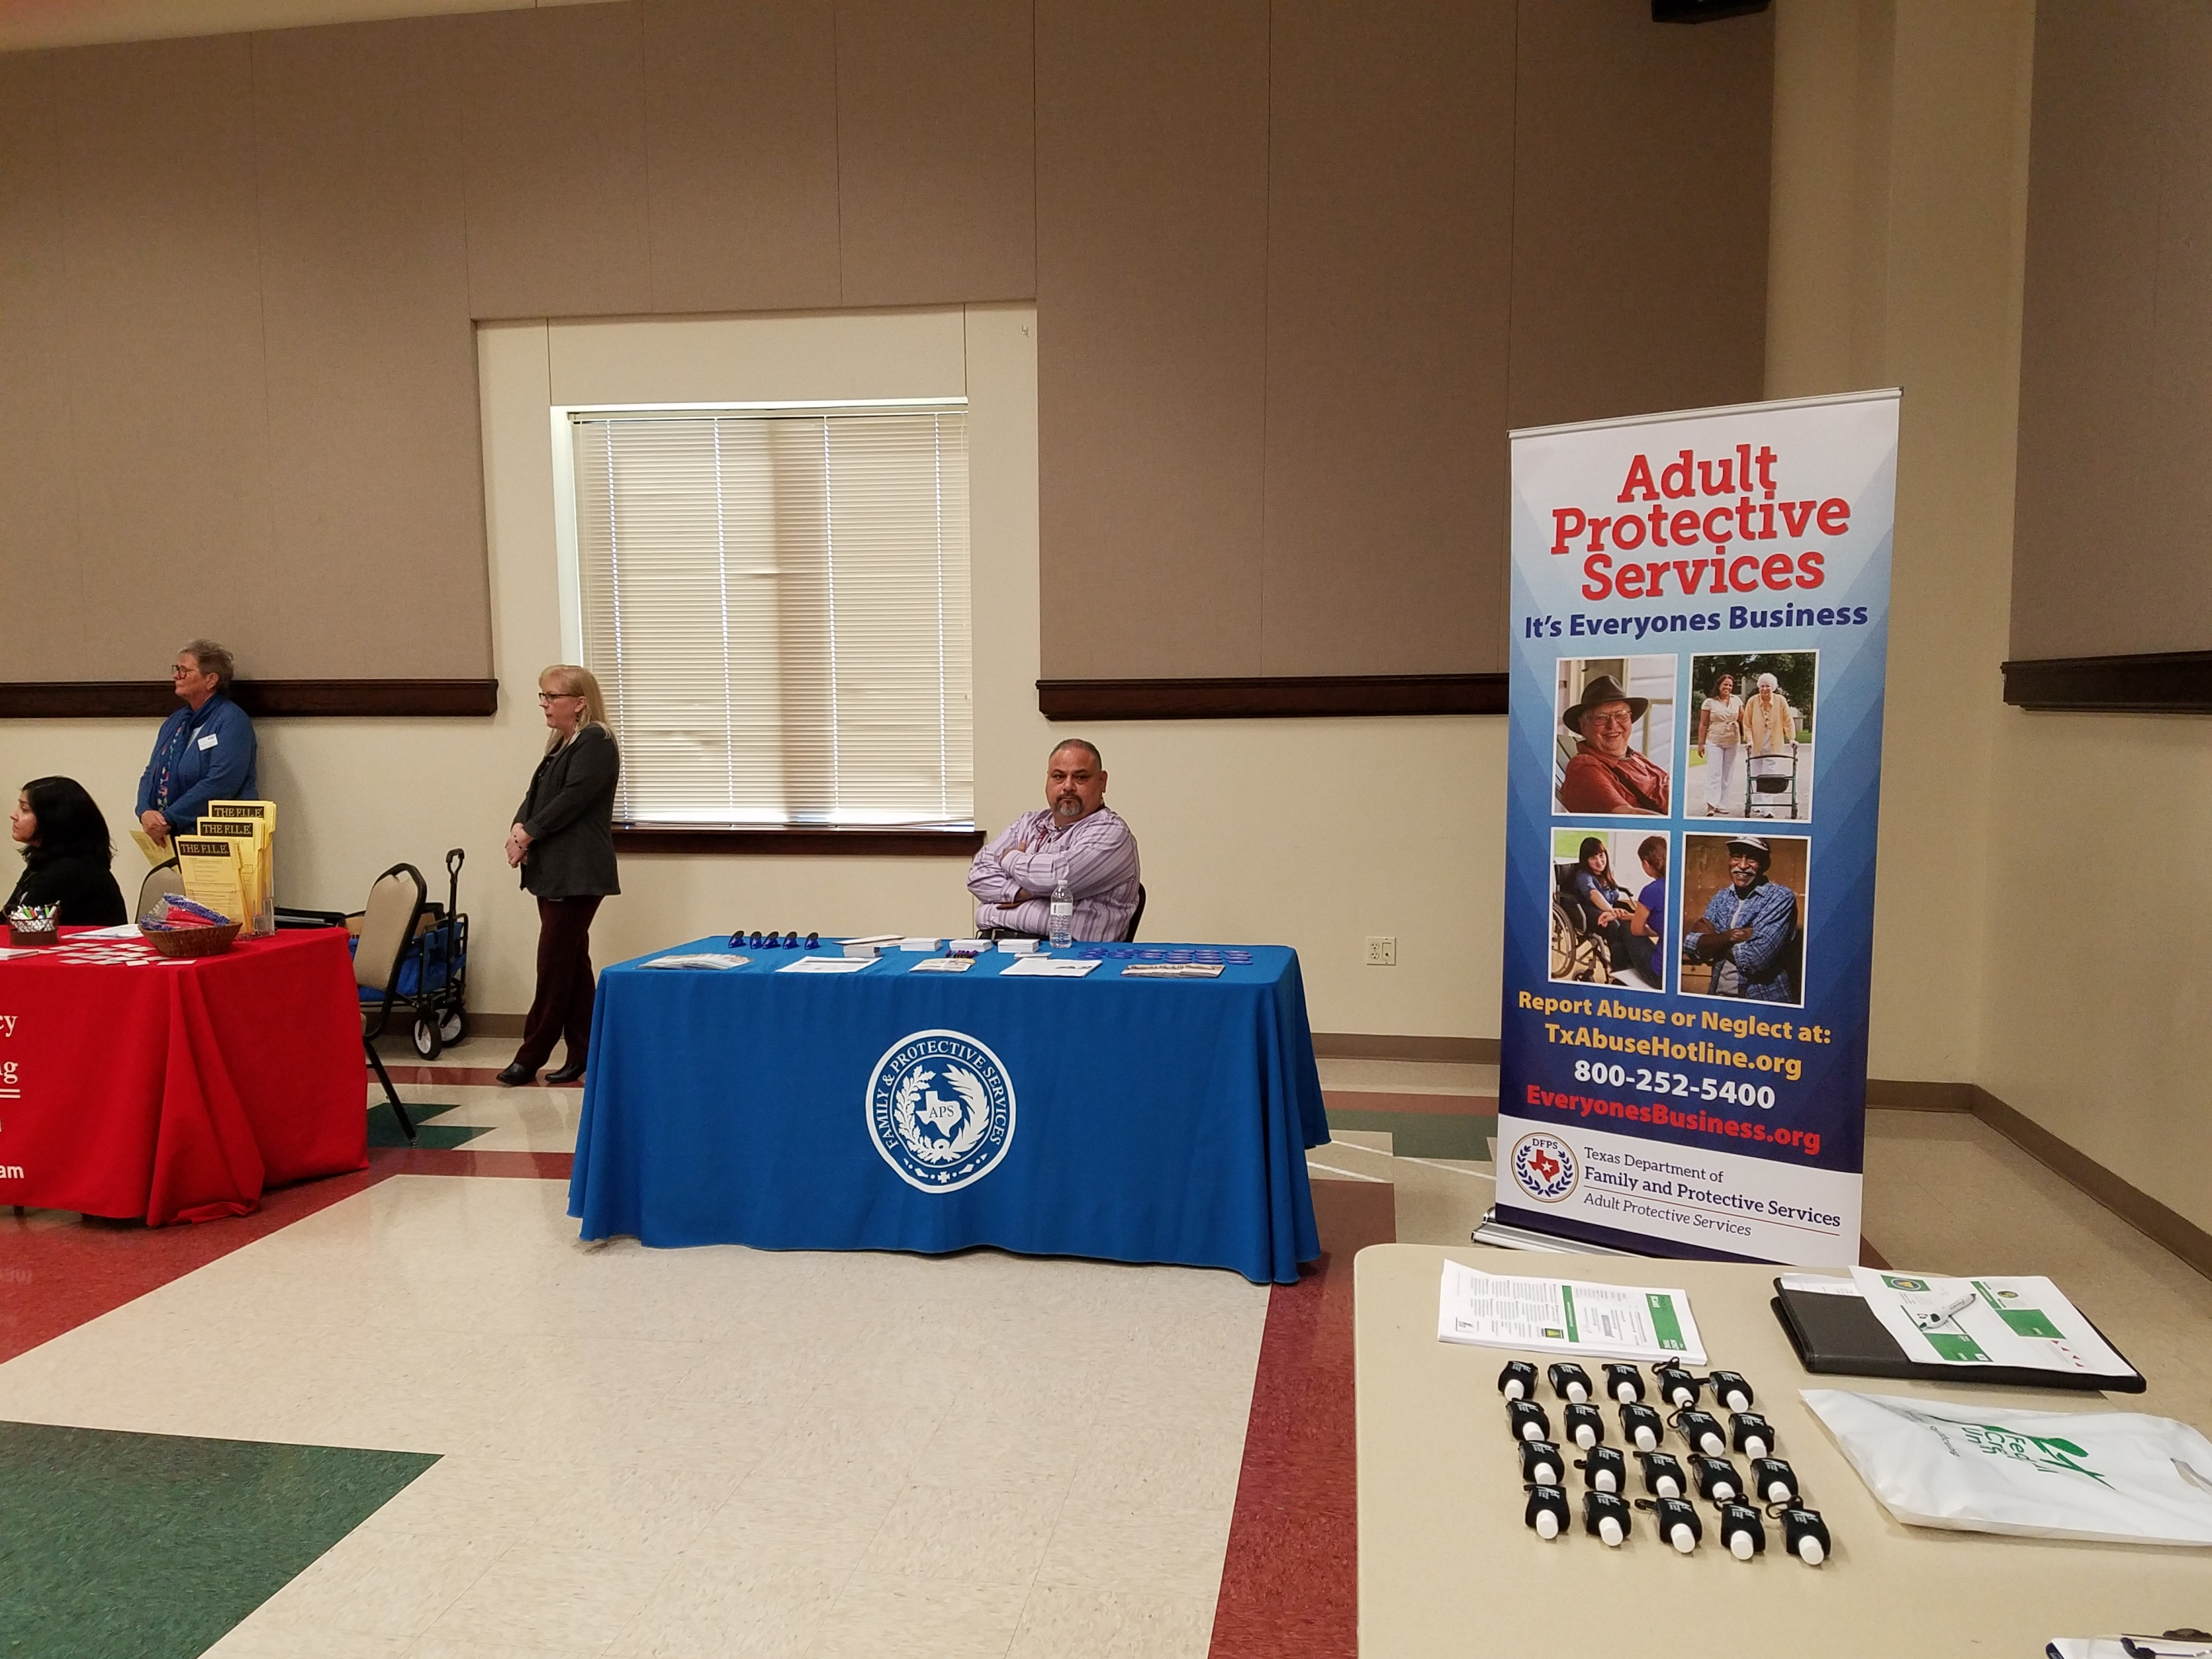 Samuel Cortina with Adult Protective Services sits at his display table awaiting his turn to speak on what services his agency provides when someone is a victim of fraud.